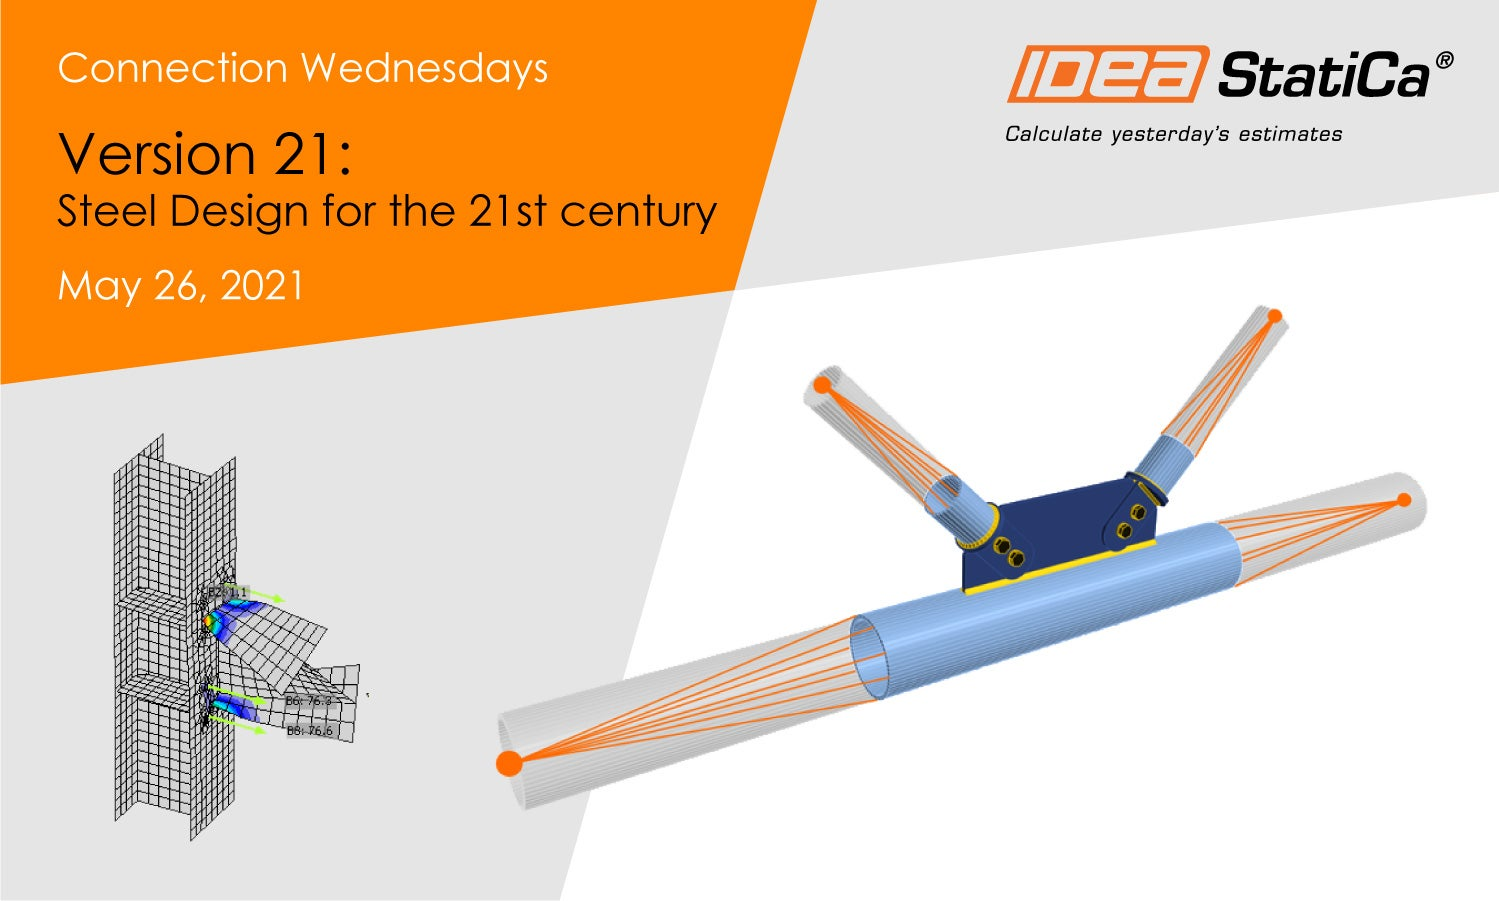 Connection Wednesdays - Steel design for the 21st century